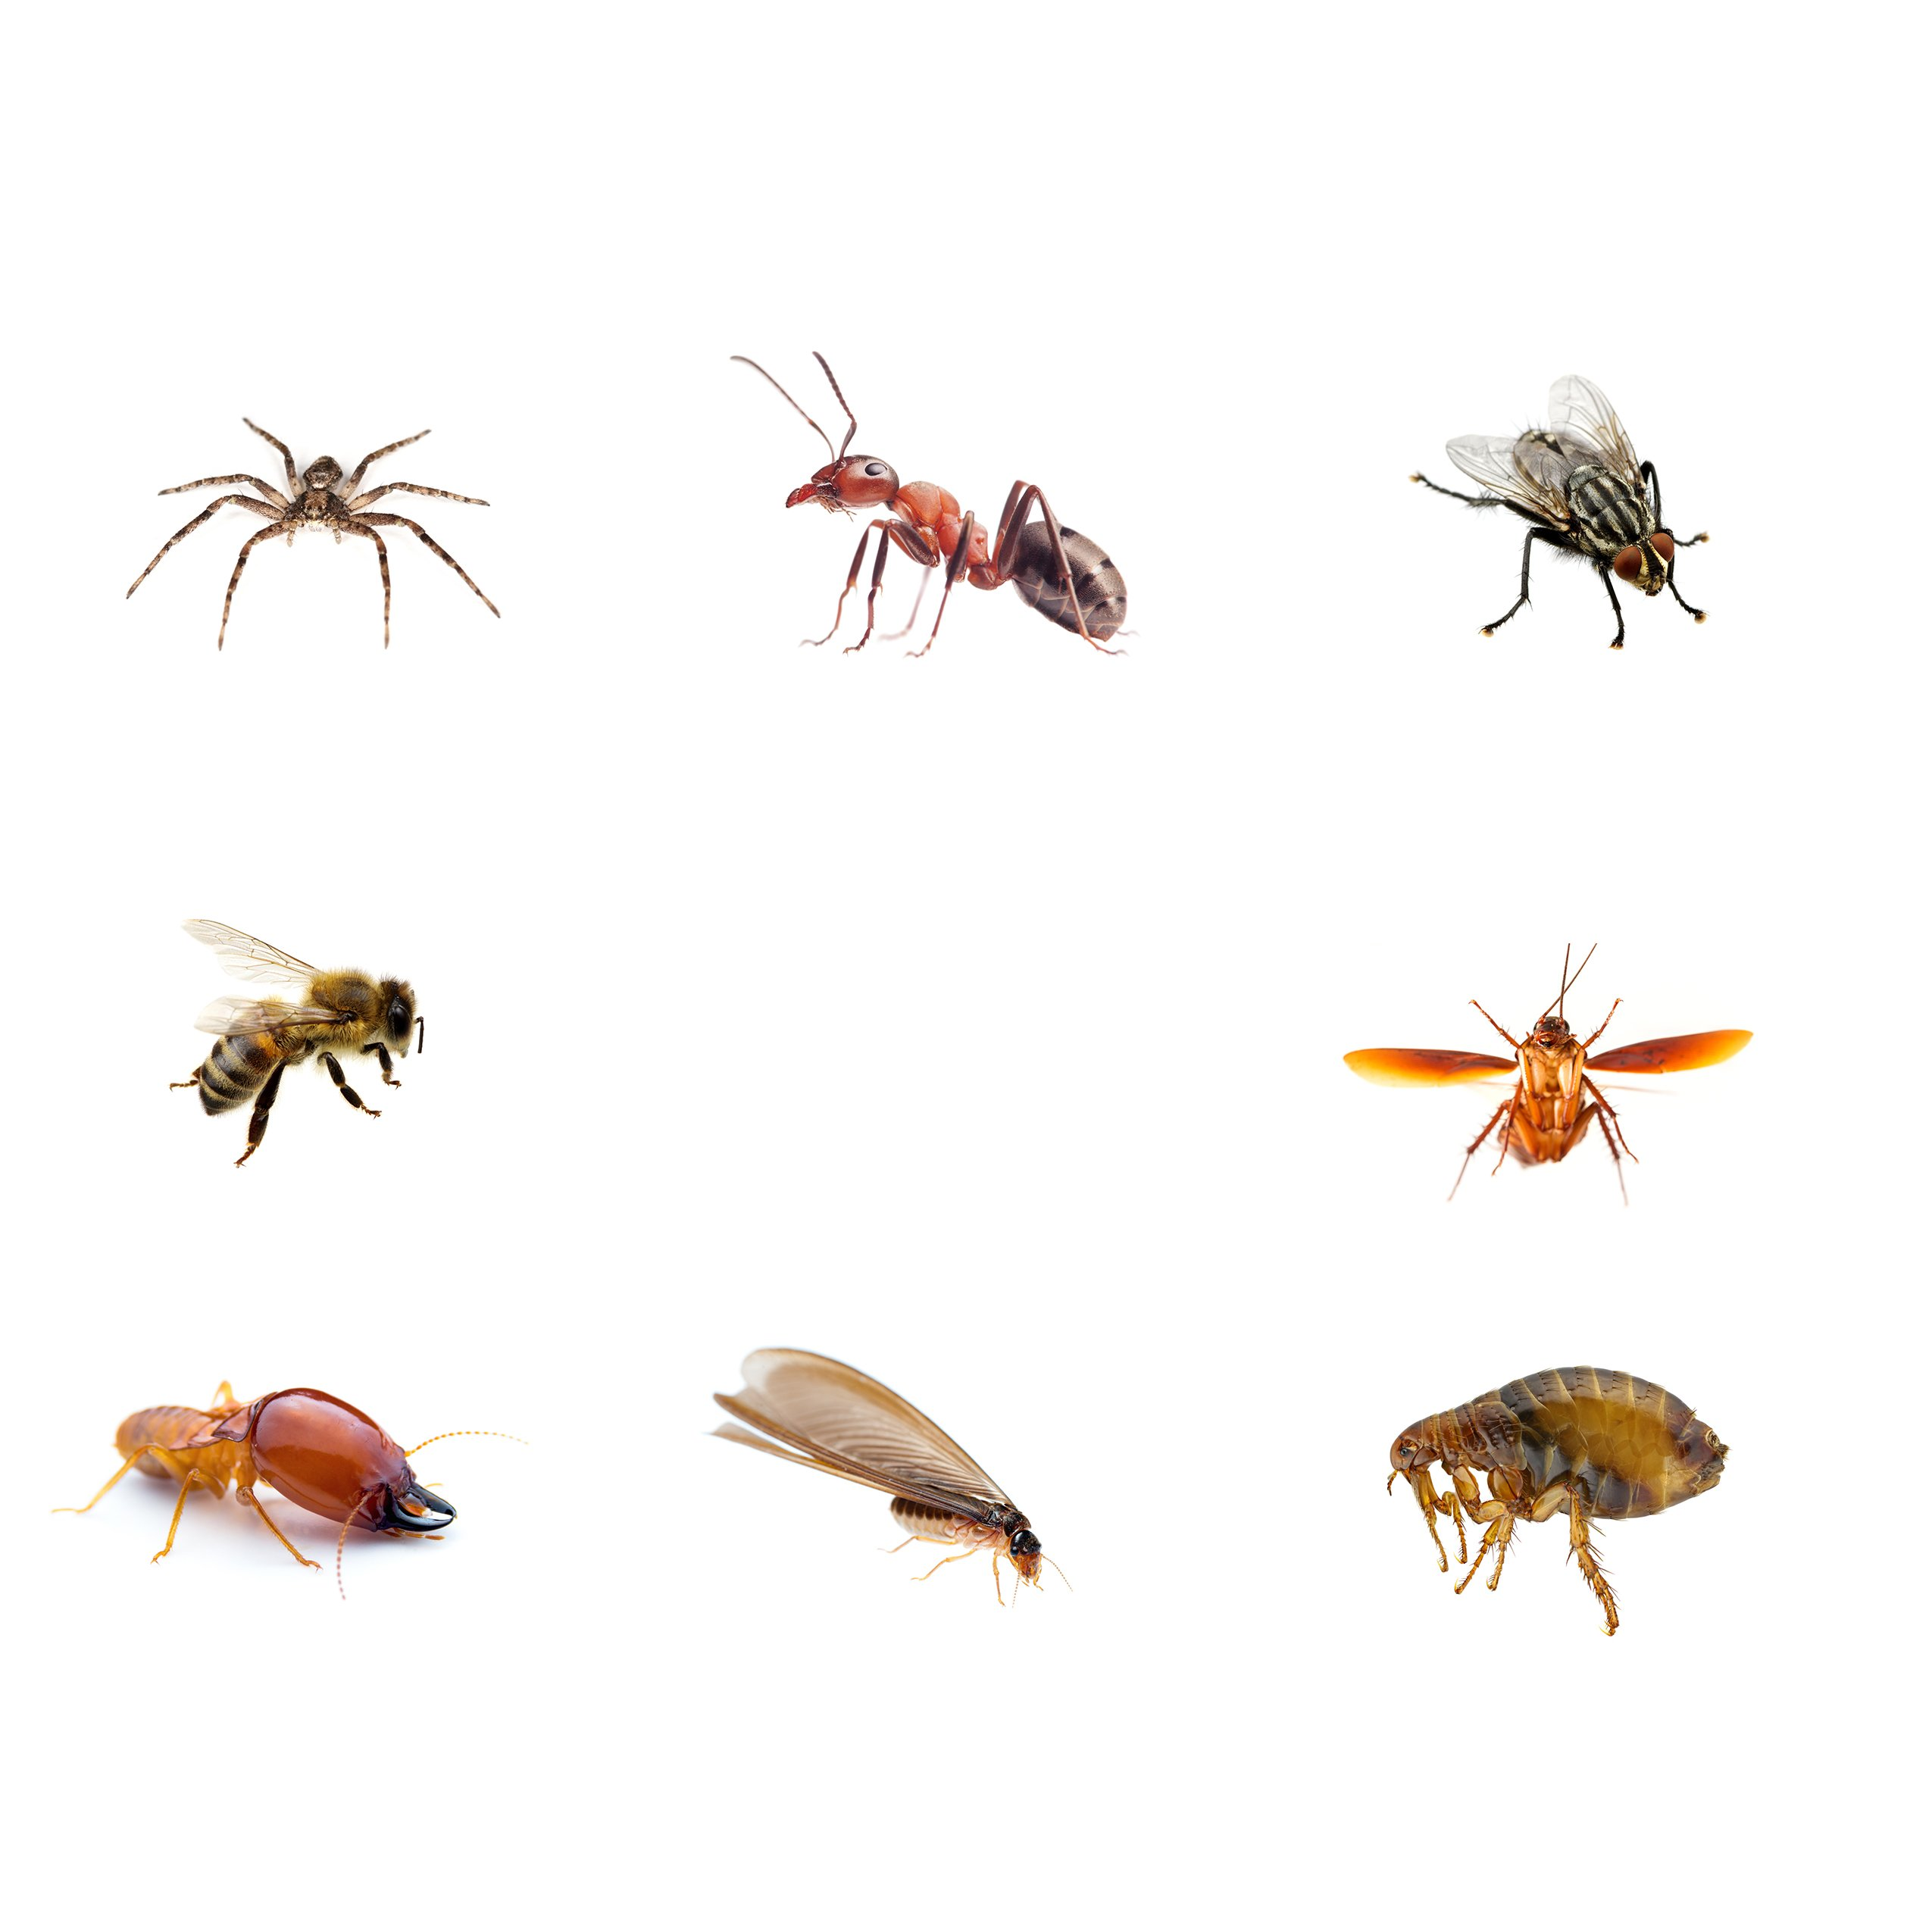 Pest control with bugs||||